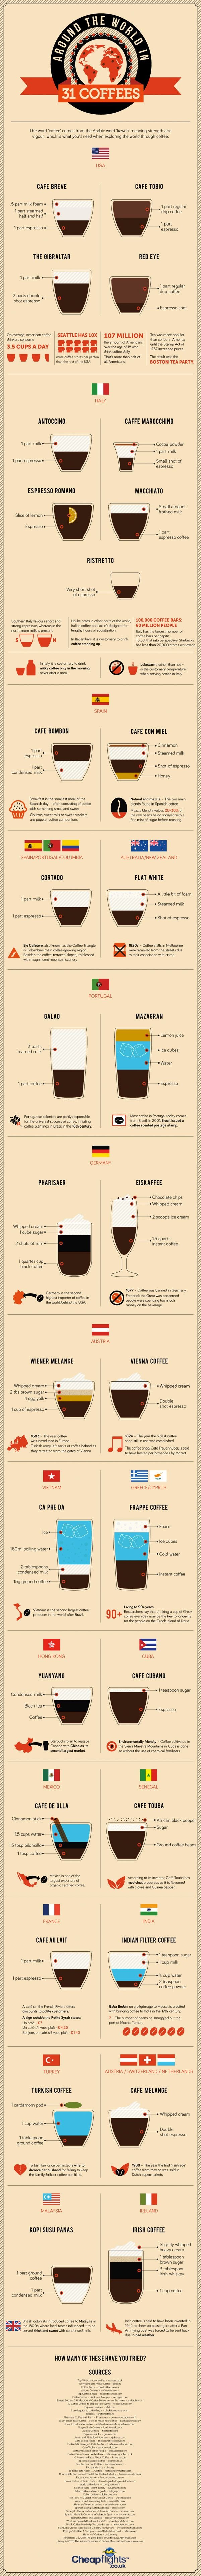 31 Beautiful, Simple Ways to Drink Your Coffee Around the World Read more at http://www.foodbeast.com/2014/04/04/31-beautiful-simple-ways-to-drink-your-coffee-around-the-world/#4DO5MArBZoODRwQE.99